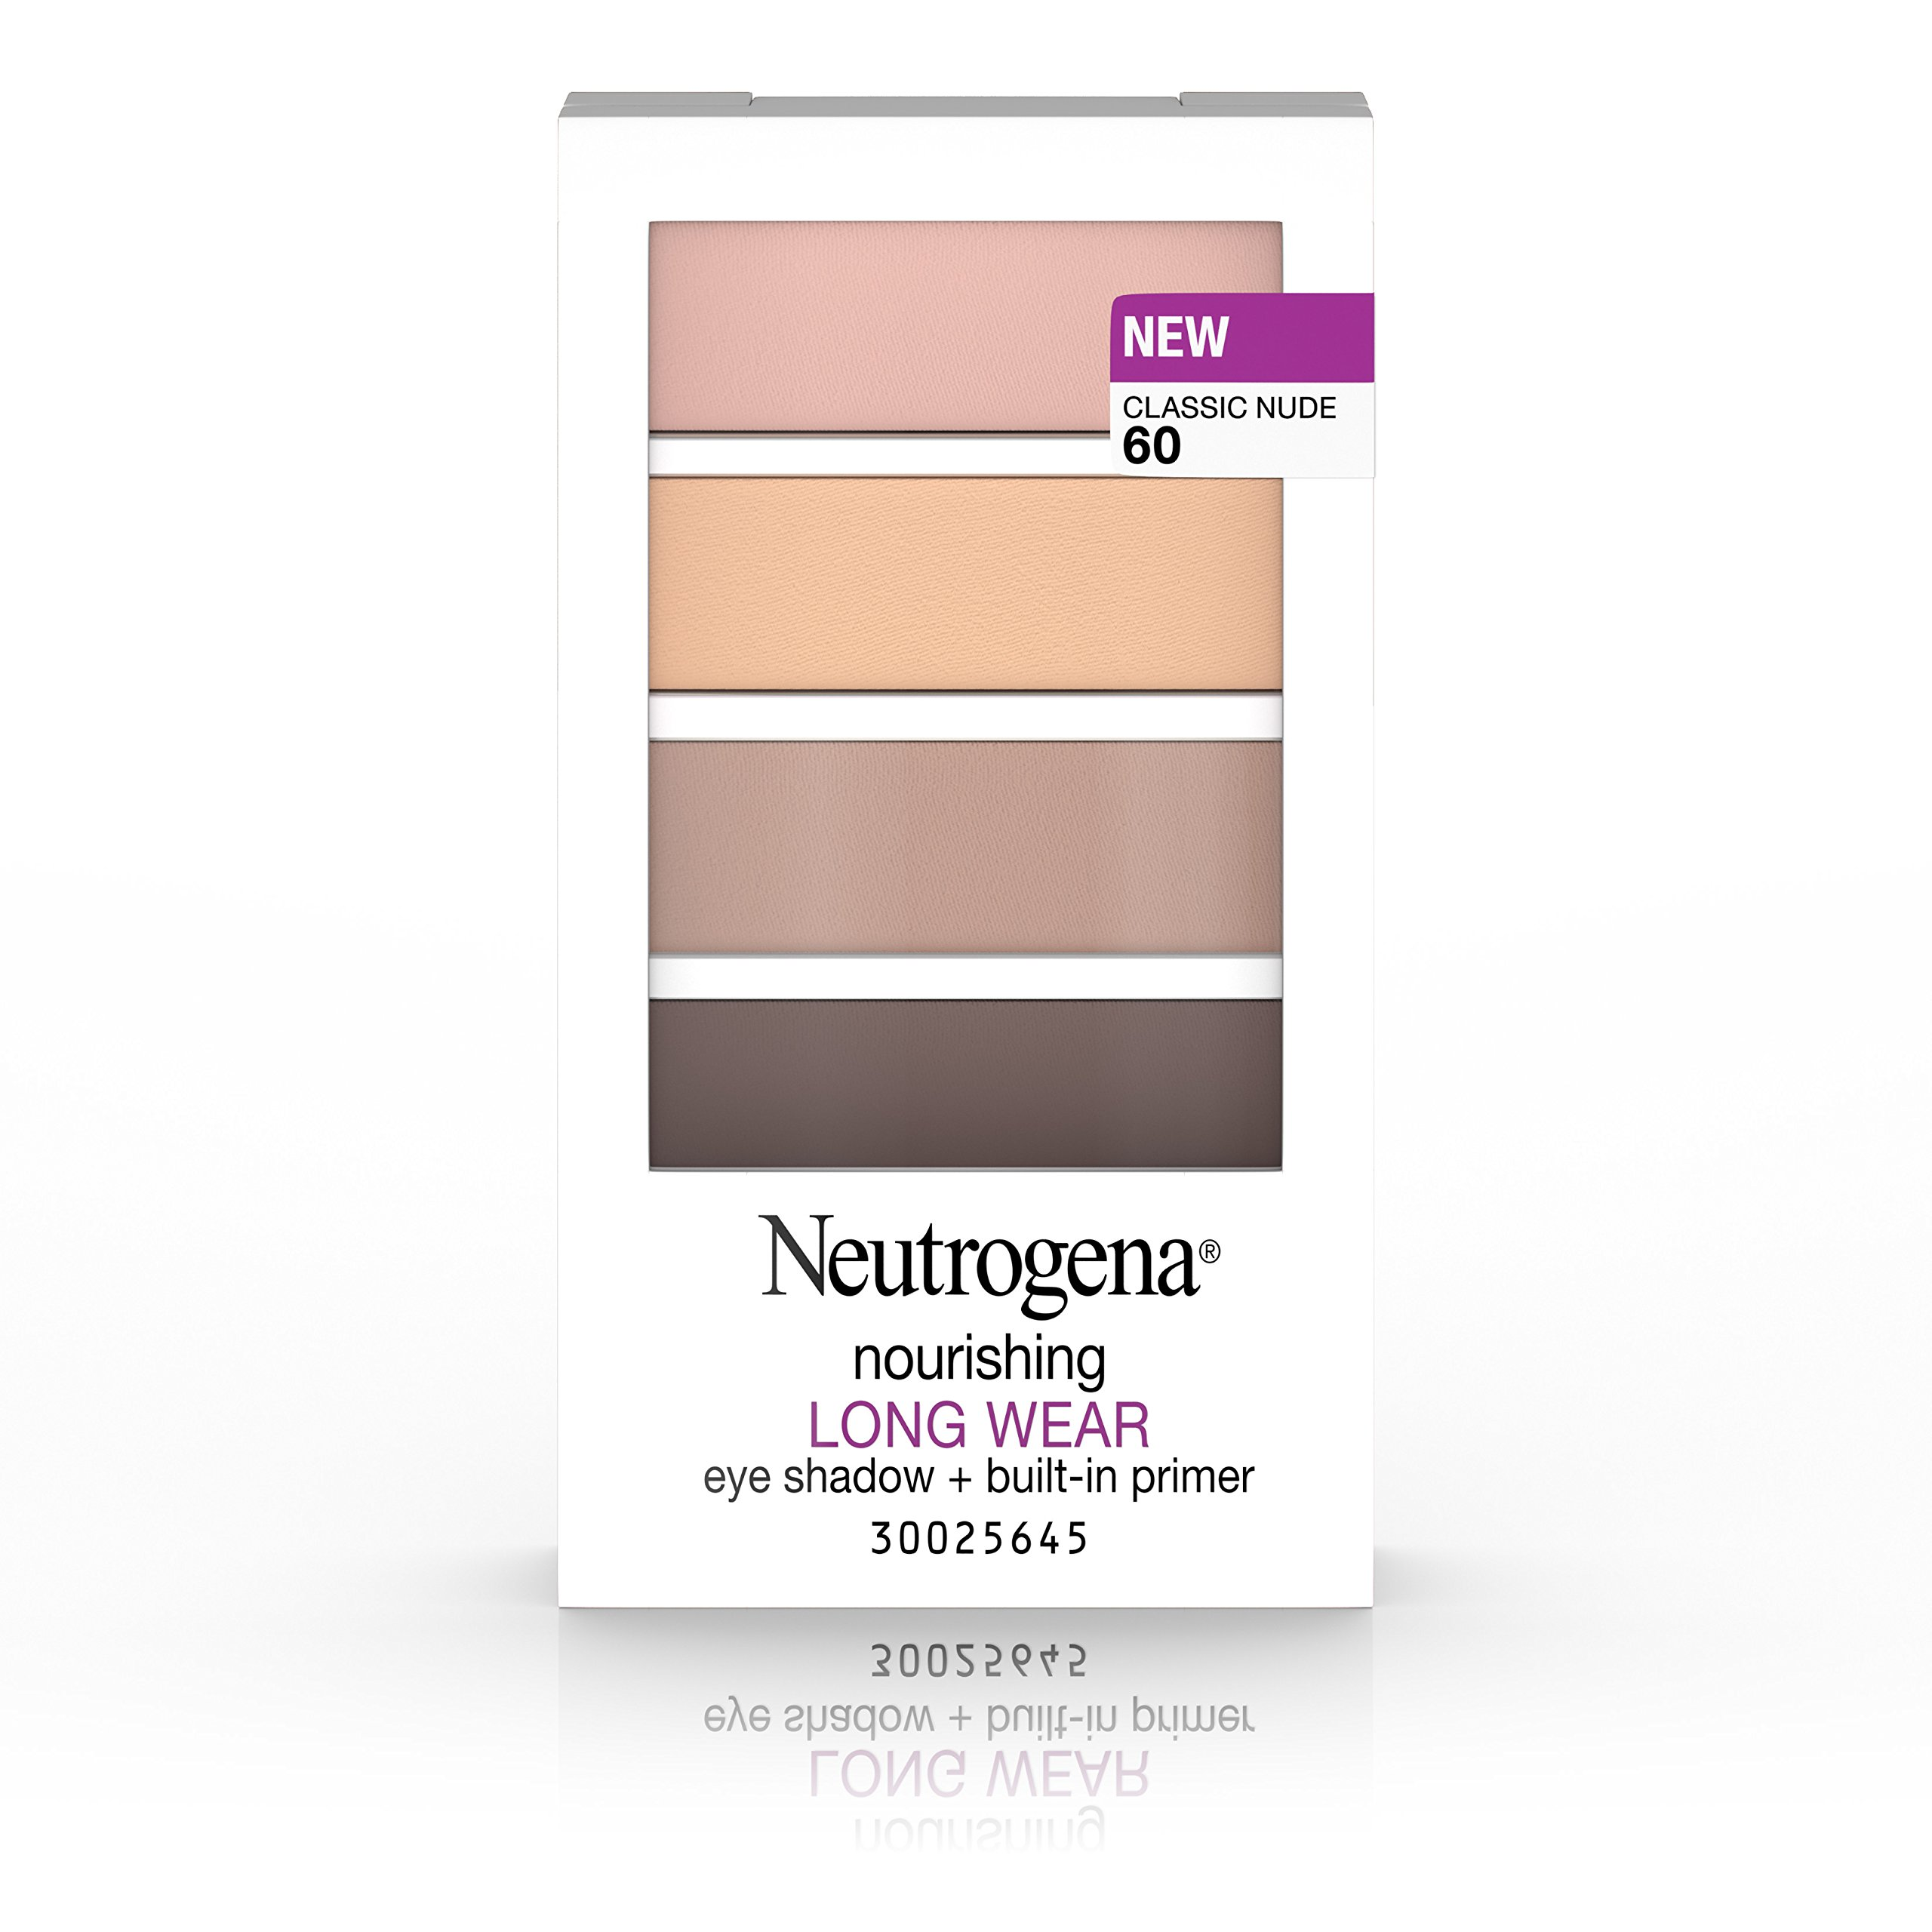 Neutrogena Nourishing Long Wear Eye Shadow + Built-In Primer, 60 Classic Nude.24 Oz.